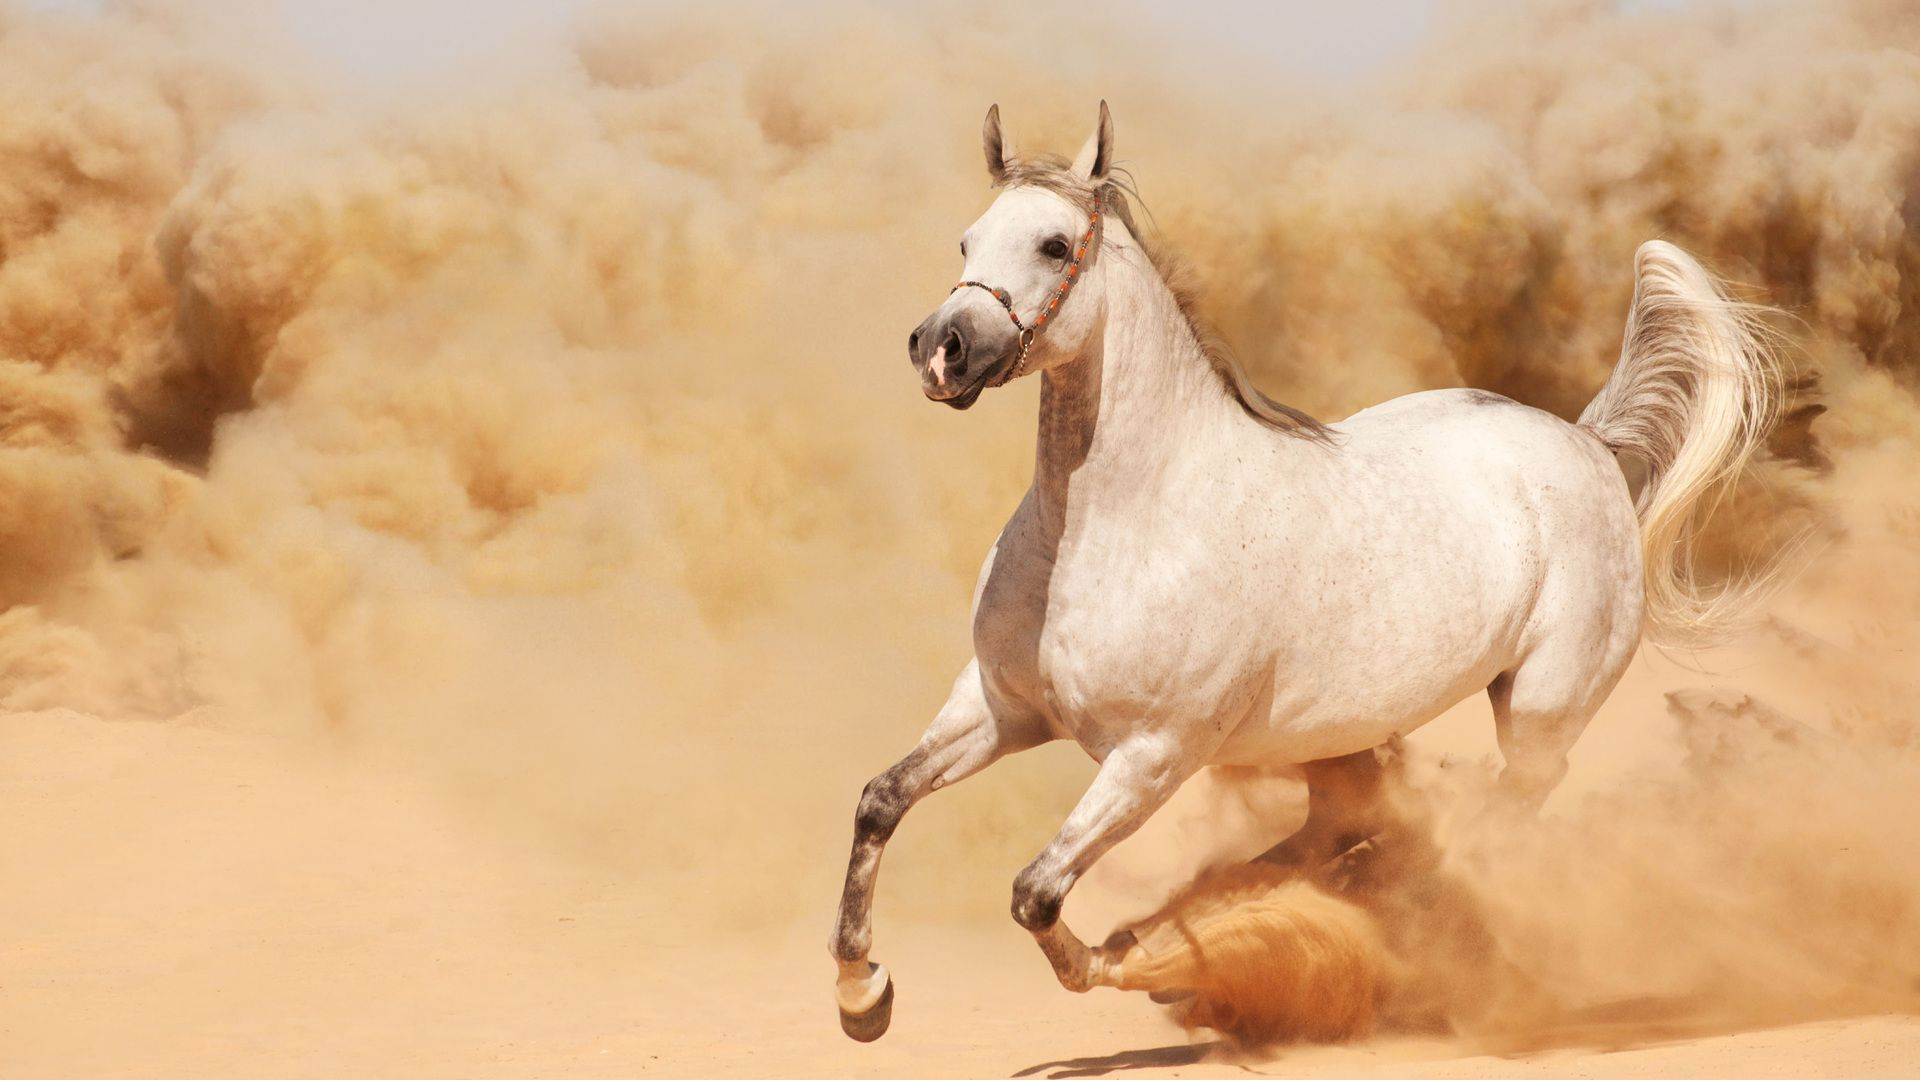 Running Horse Pictures